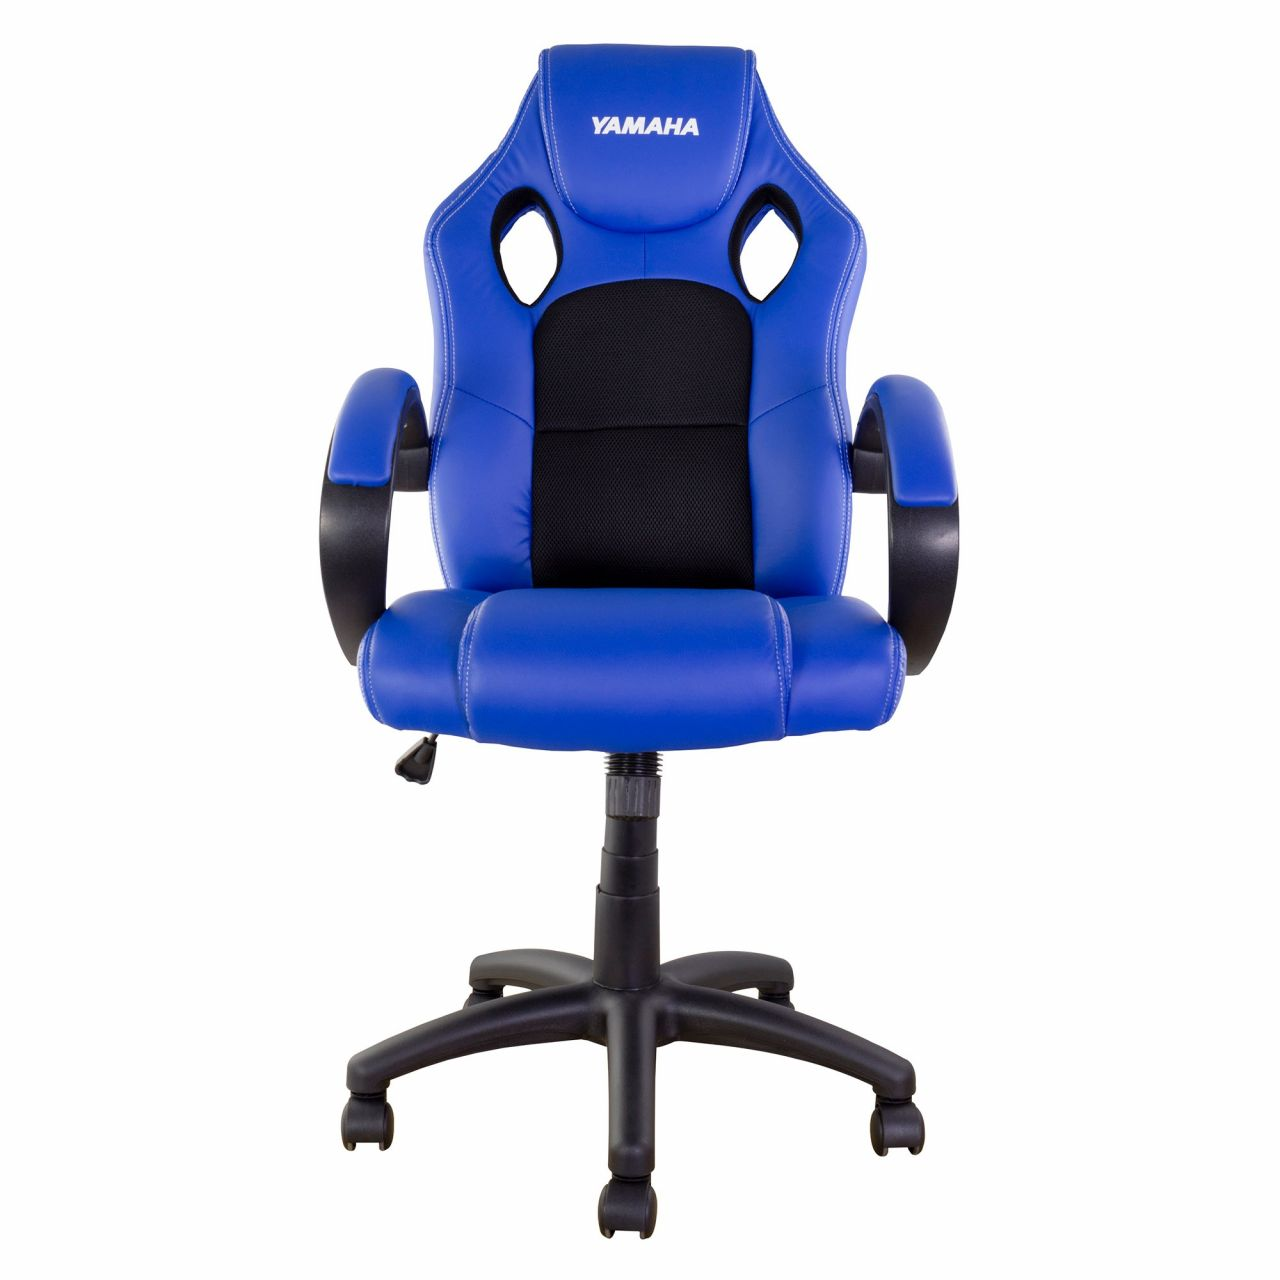 bicycle seat desk chair stacking chairs for less bike it rider office gsm sport seats